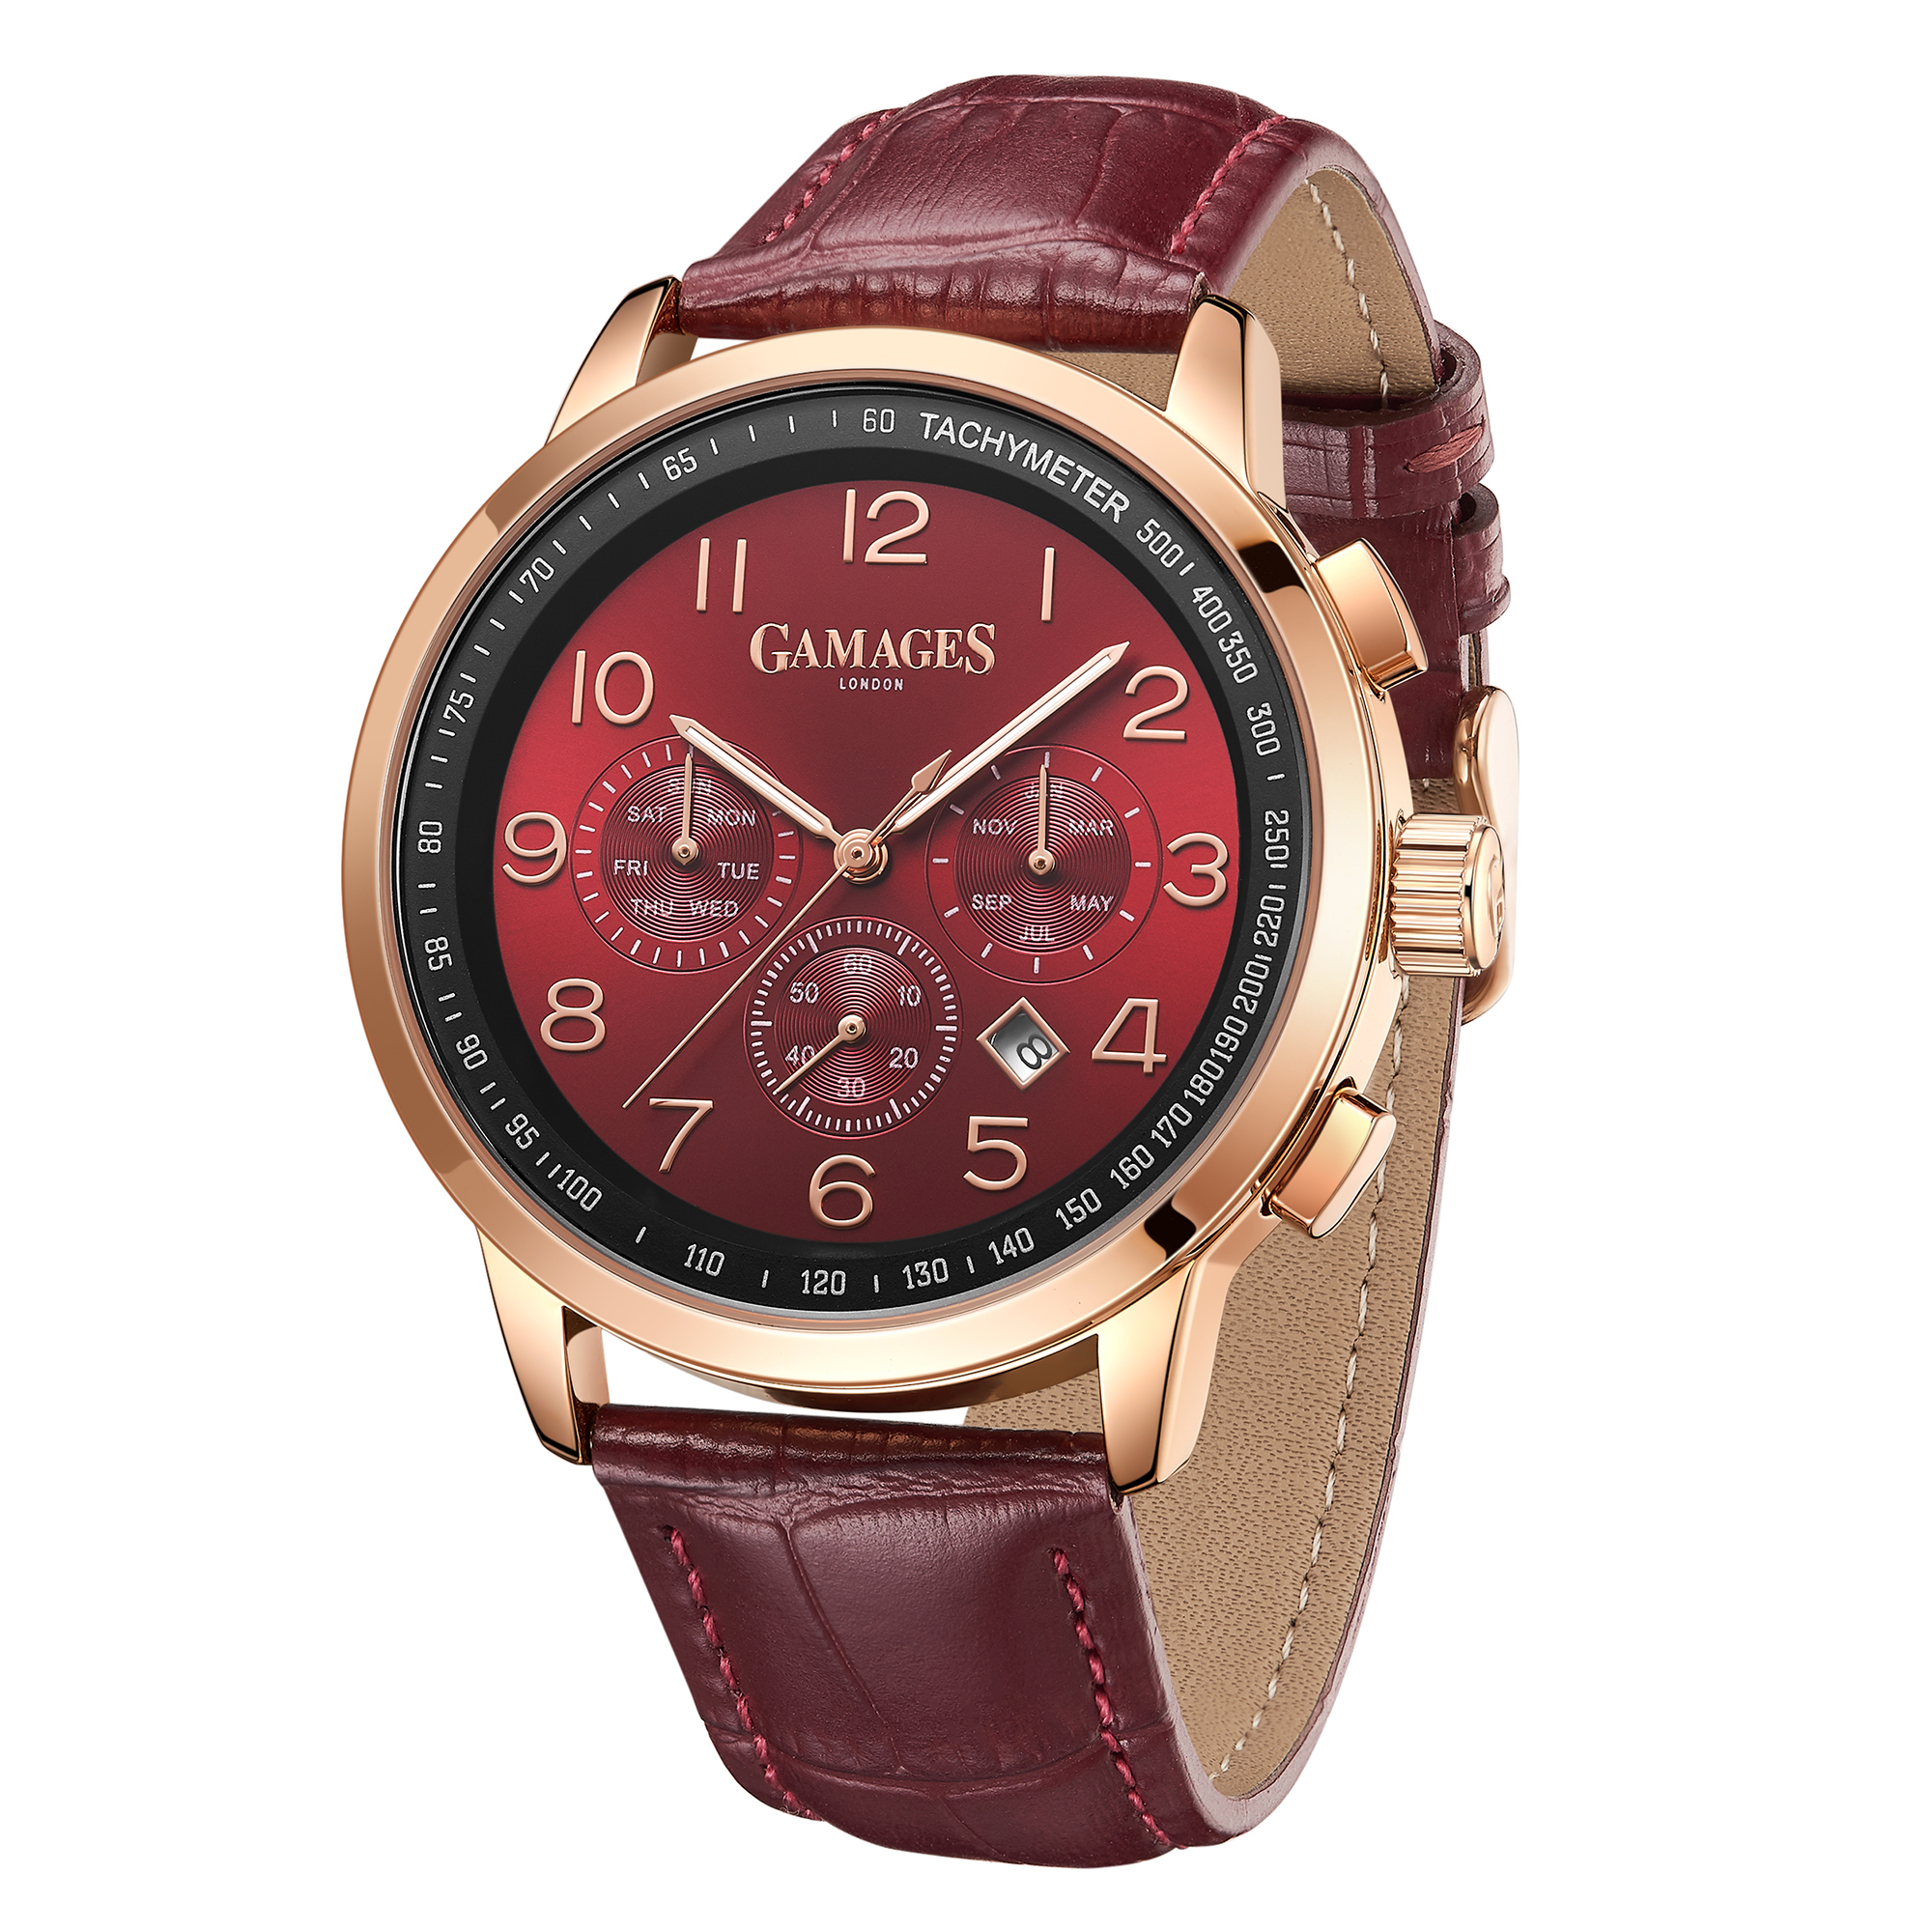 Ltd Edition Hand Assembled Gamages Classique Automatic Red – 5 Year Warranty & Free Delivery - Image 4 of 4